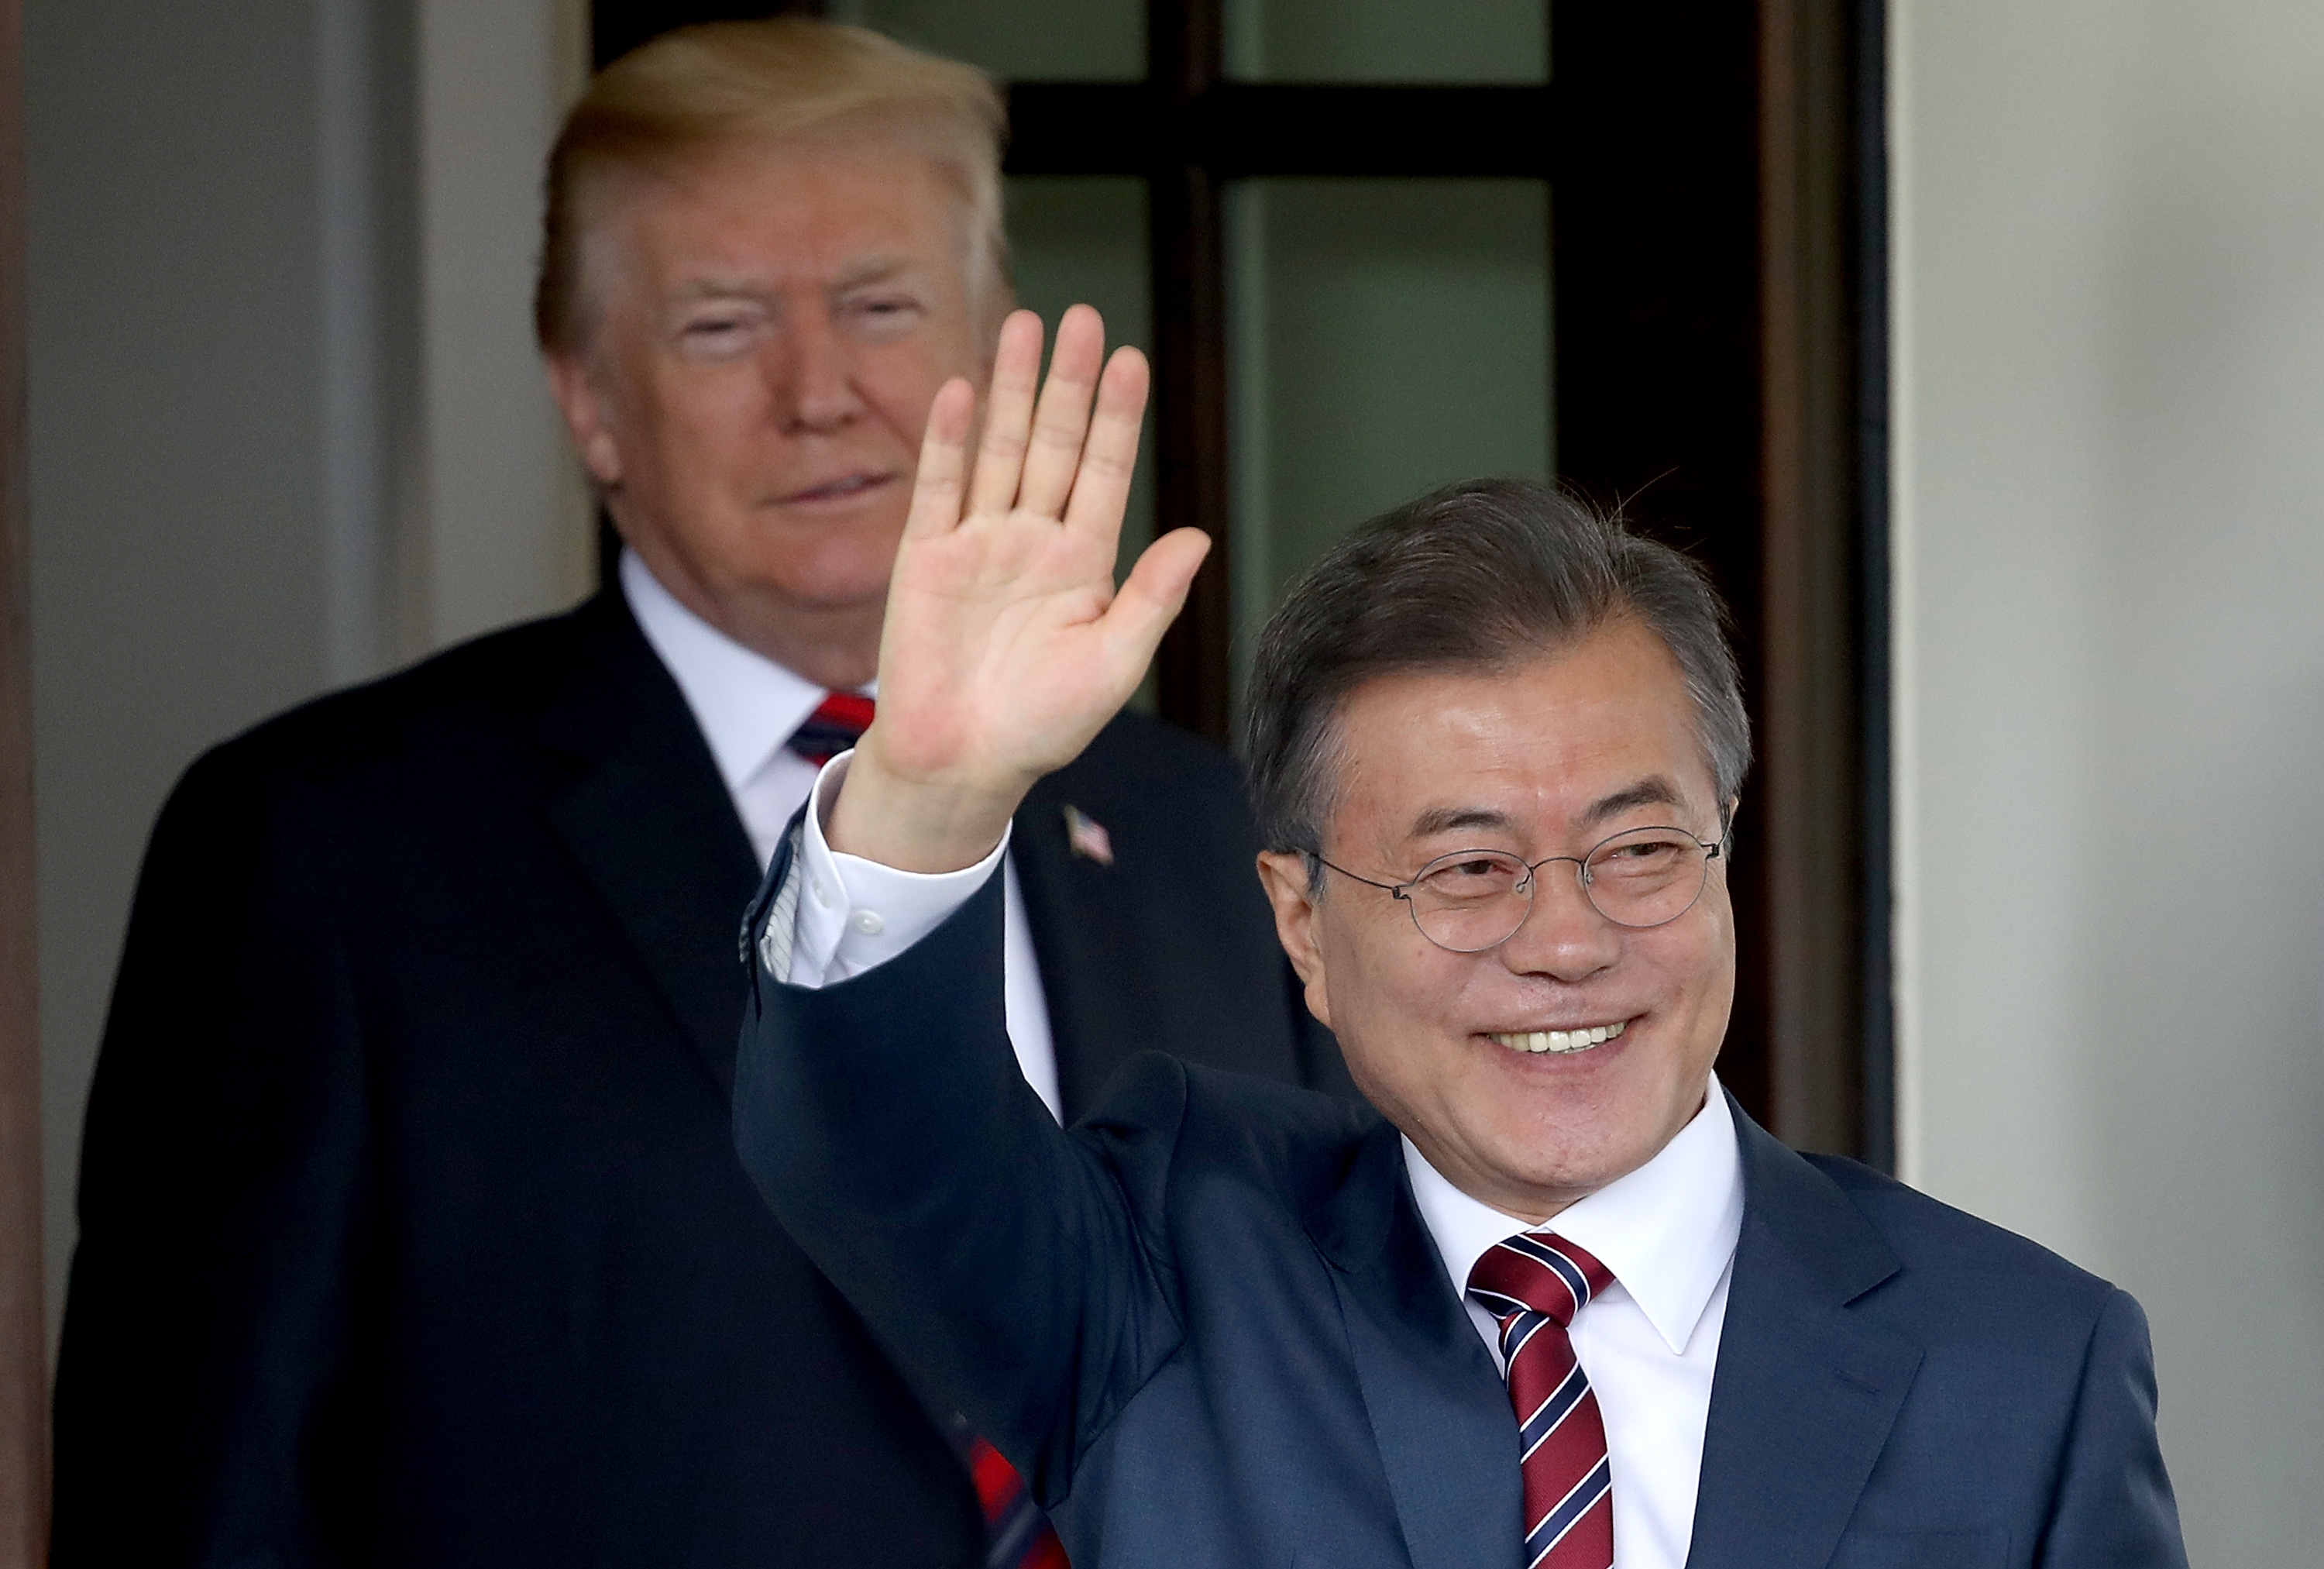 U.S. President Donald Trump (L) welcomes Republic of Korea President Moon Jae-in to the White House May 22, 2018 in Washington, DC.